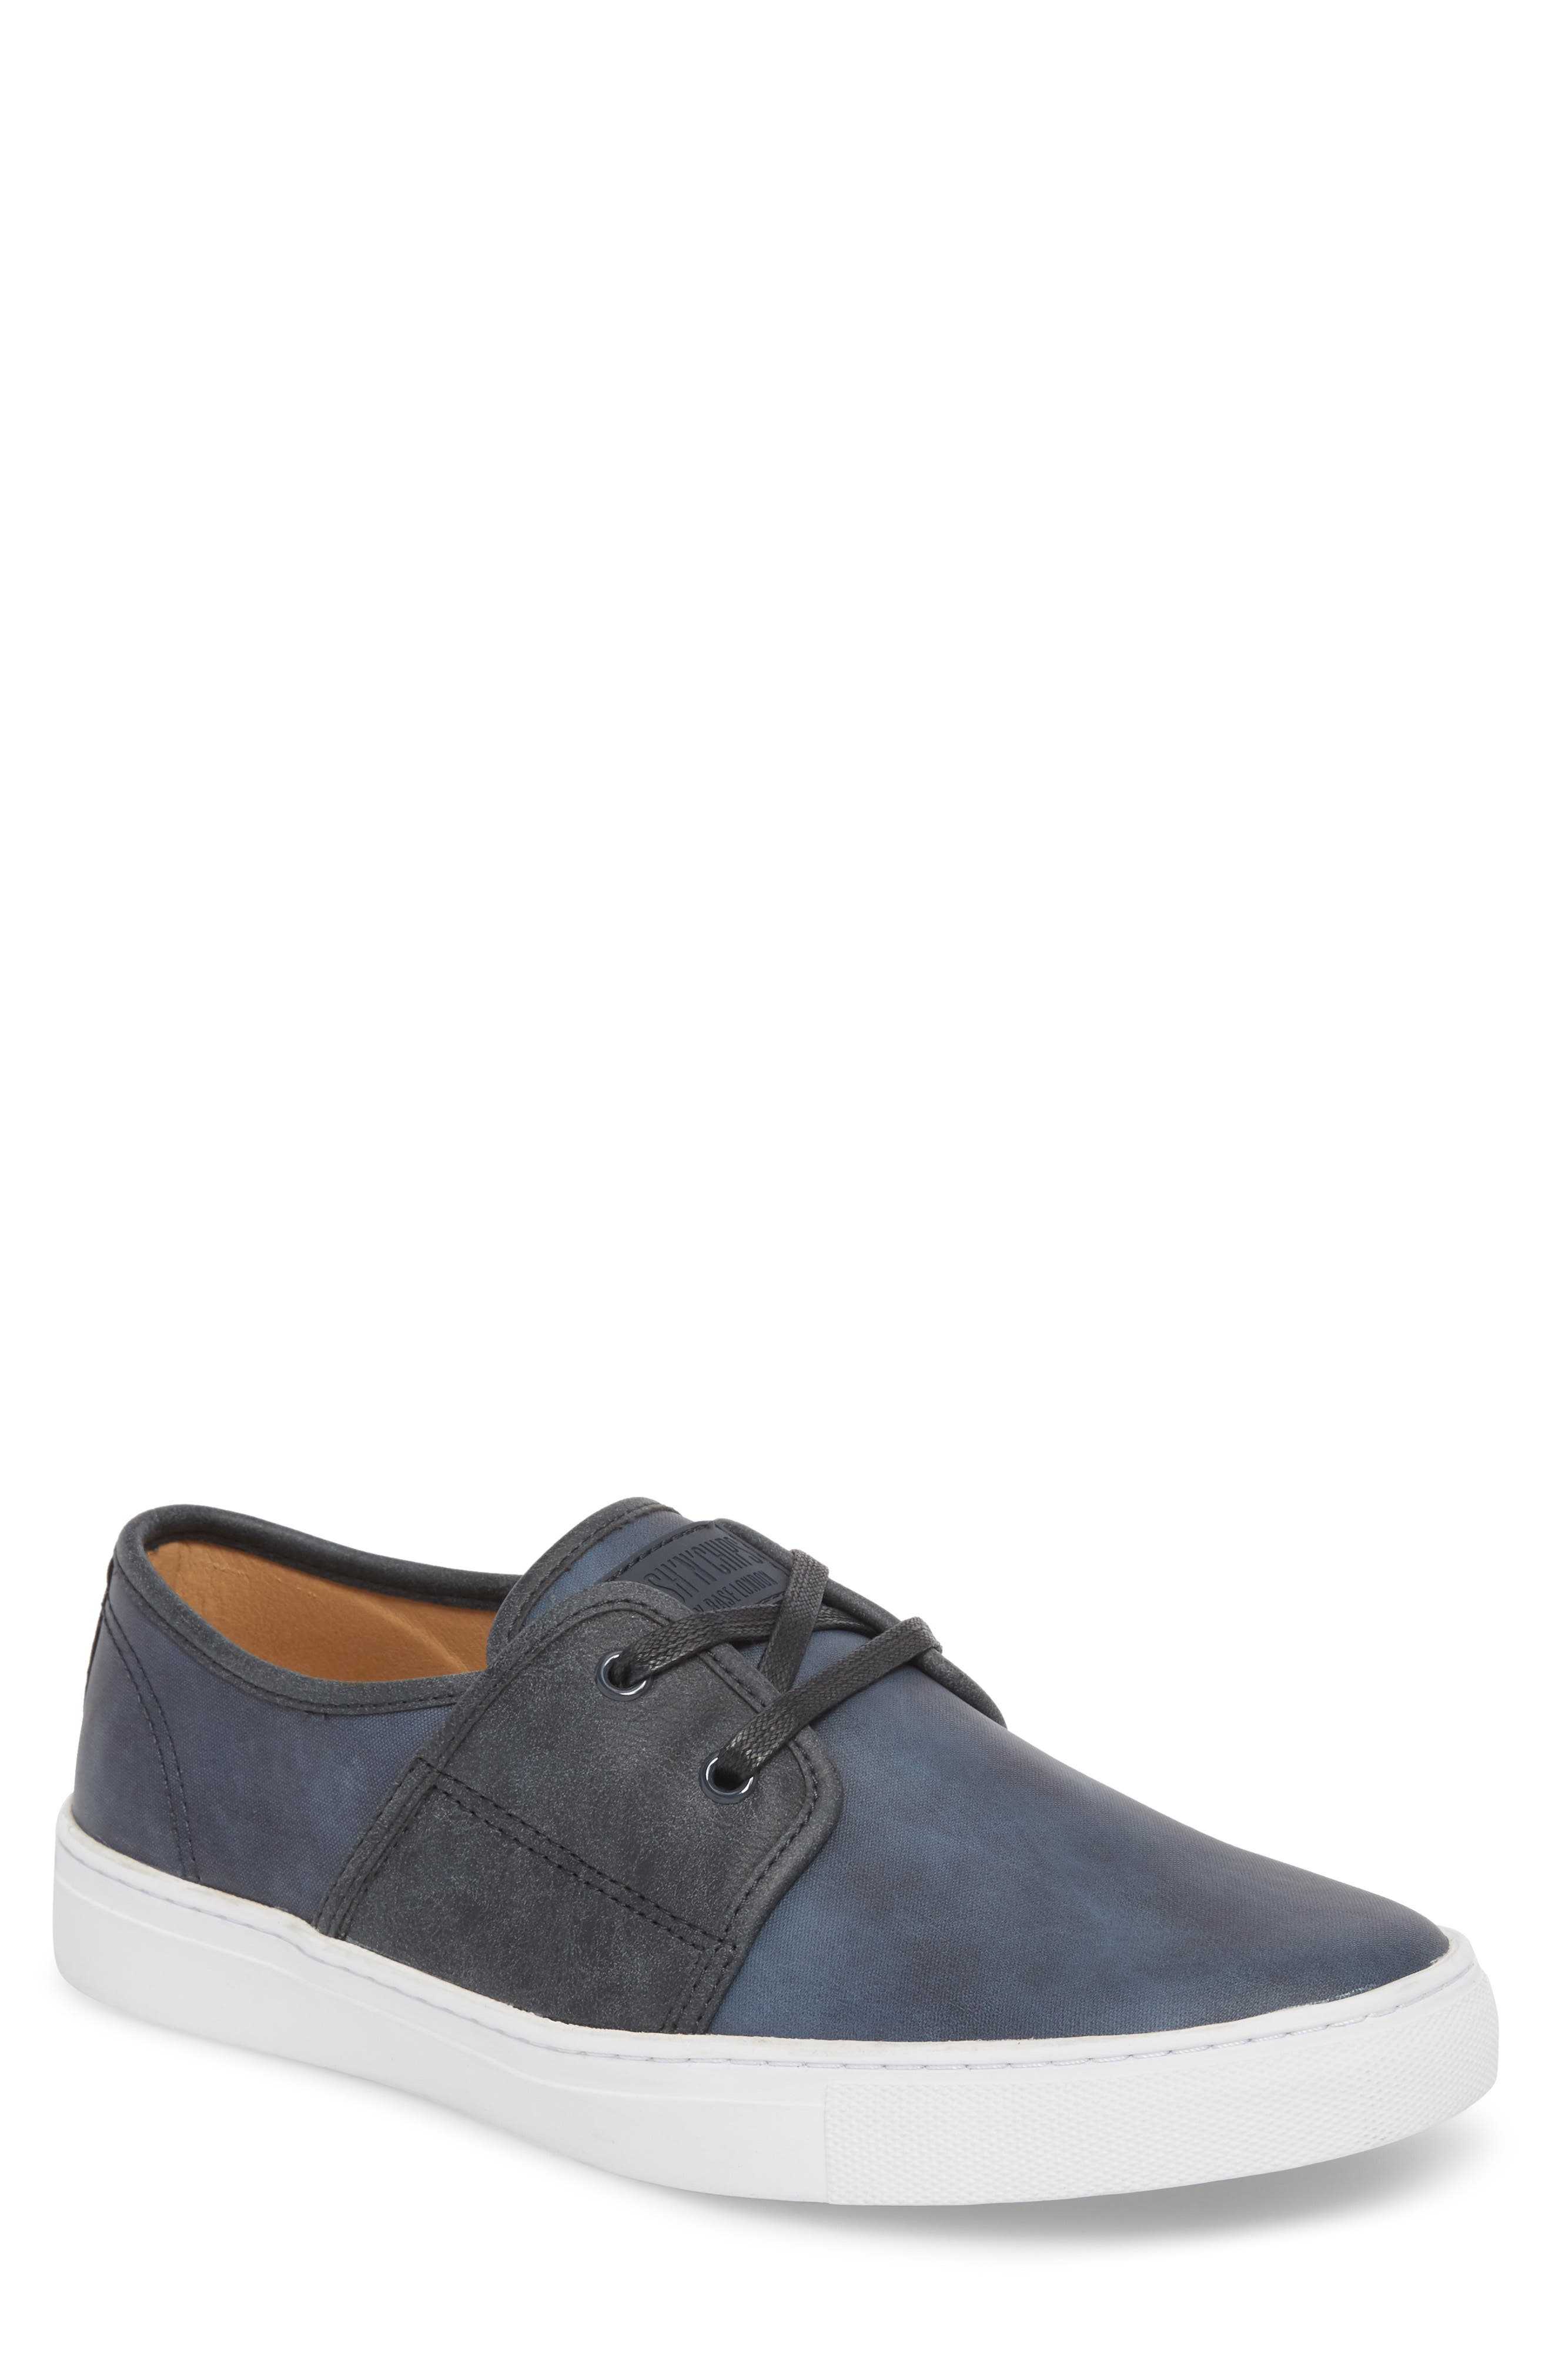 Toronto Low Top Sneaker,                         Main,                         color, Navy Faux Suede